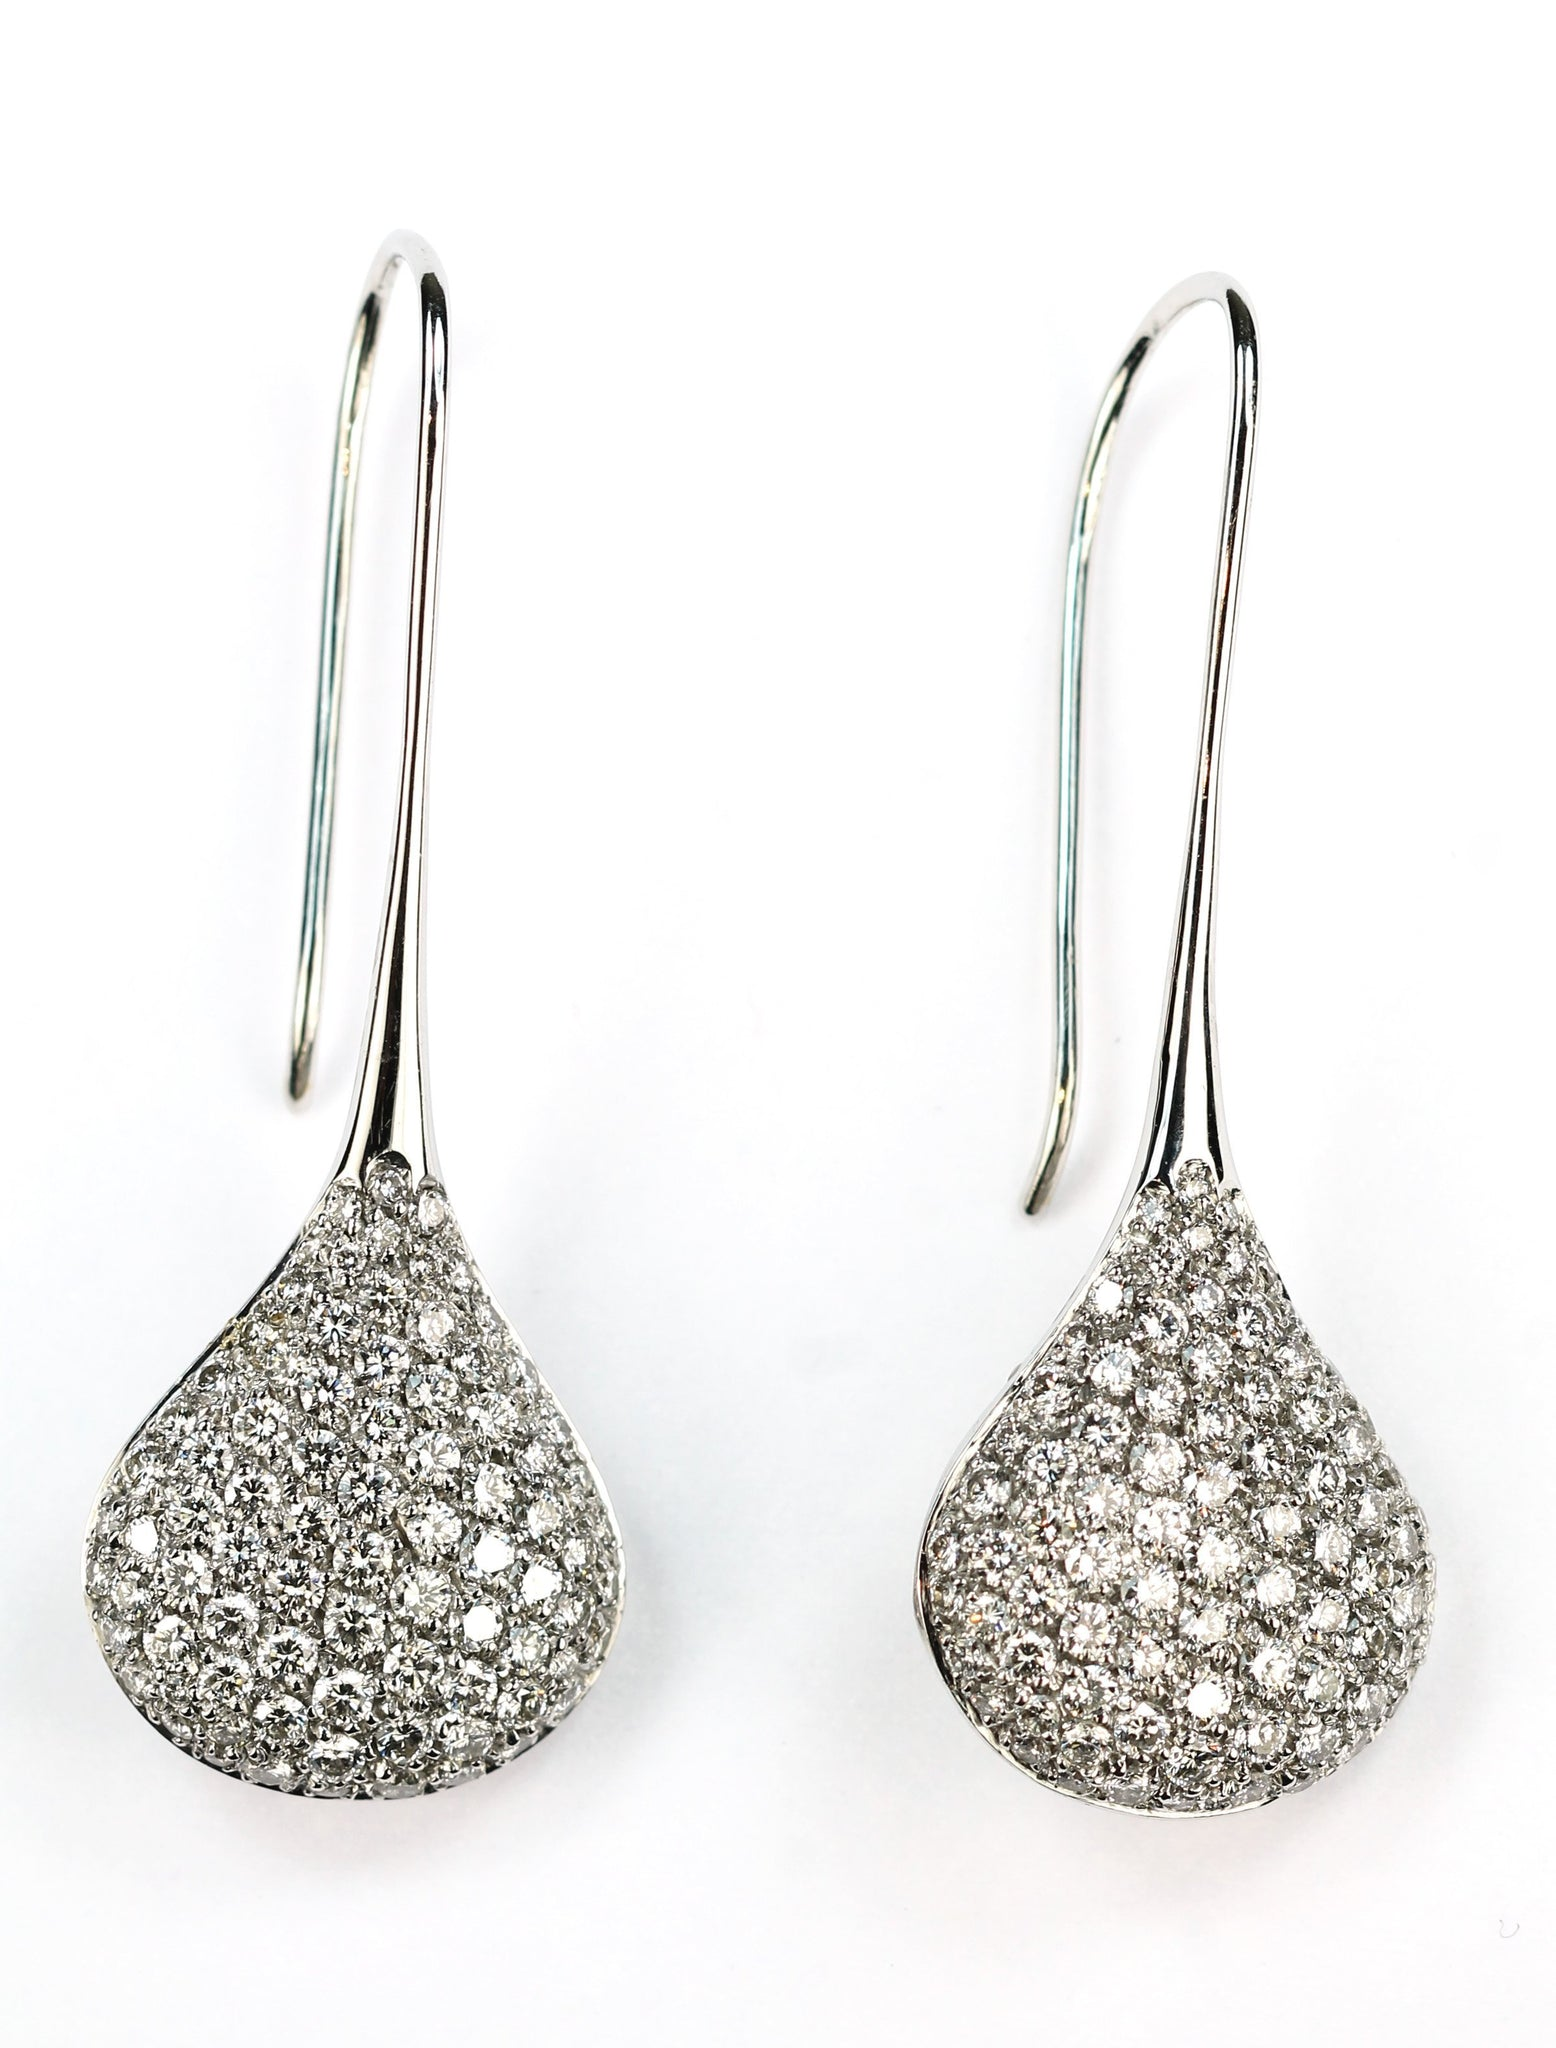 Vintage Luca Carati Diamond Earrings